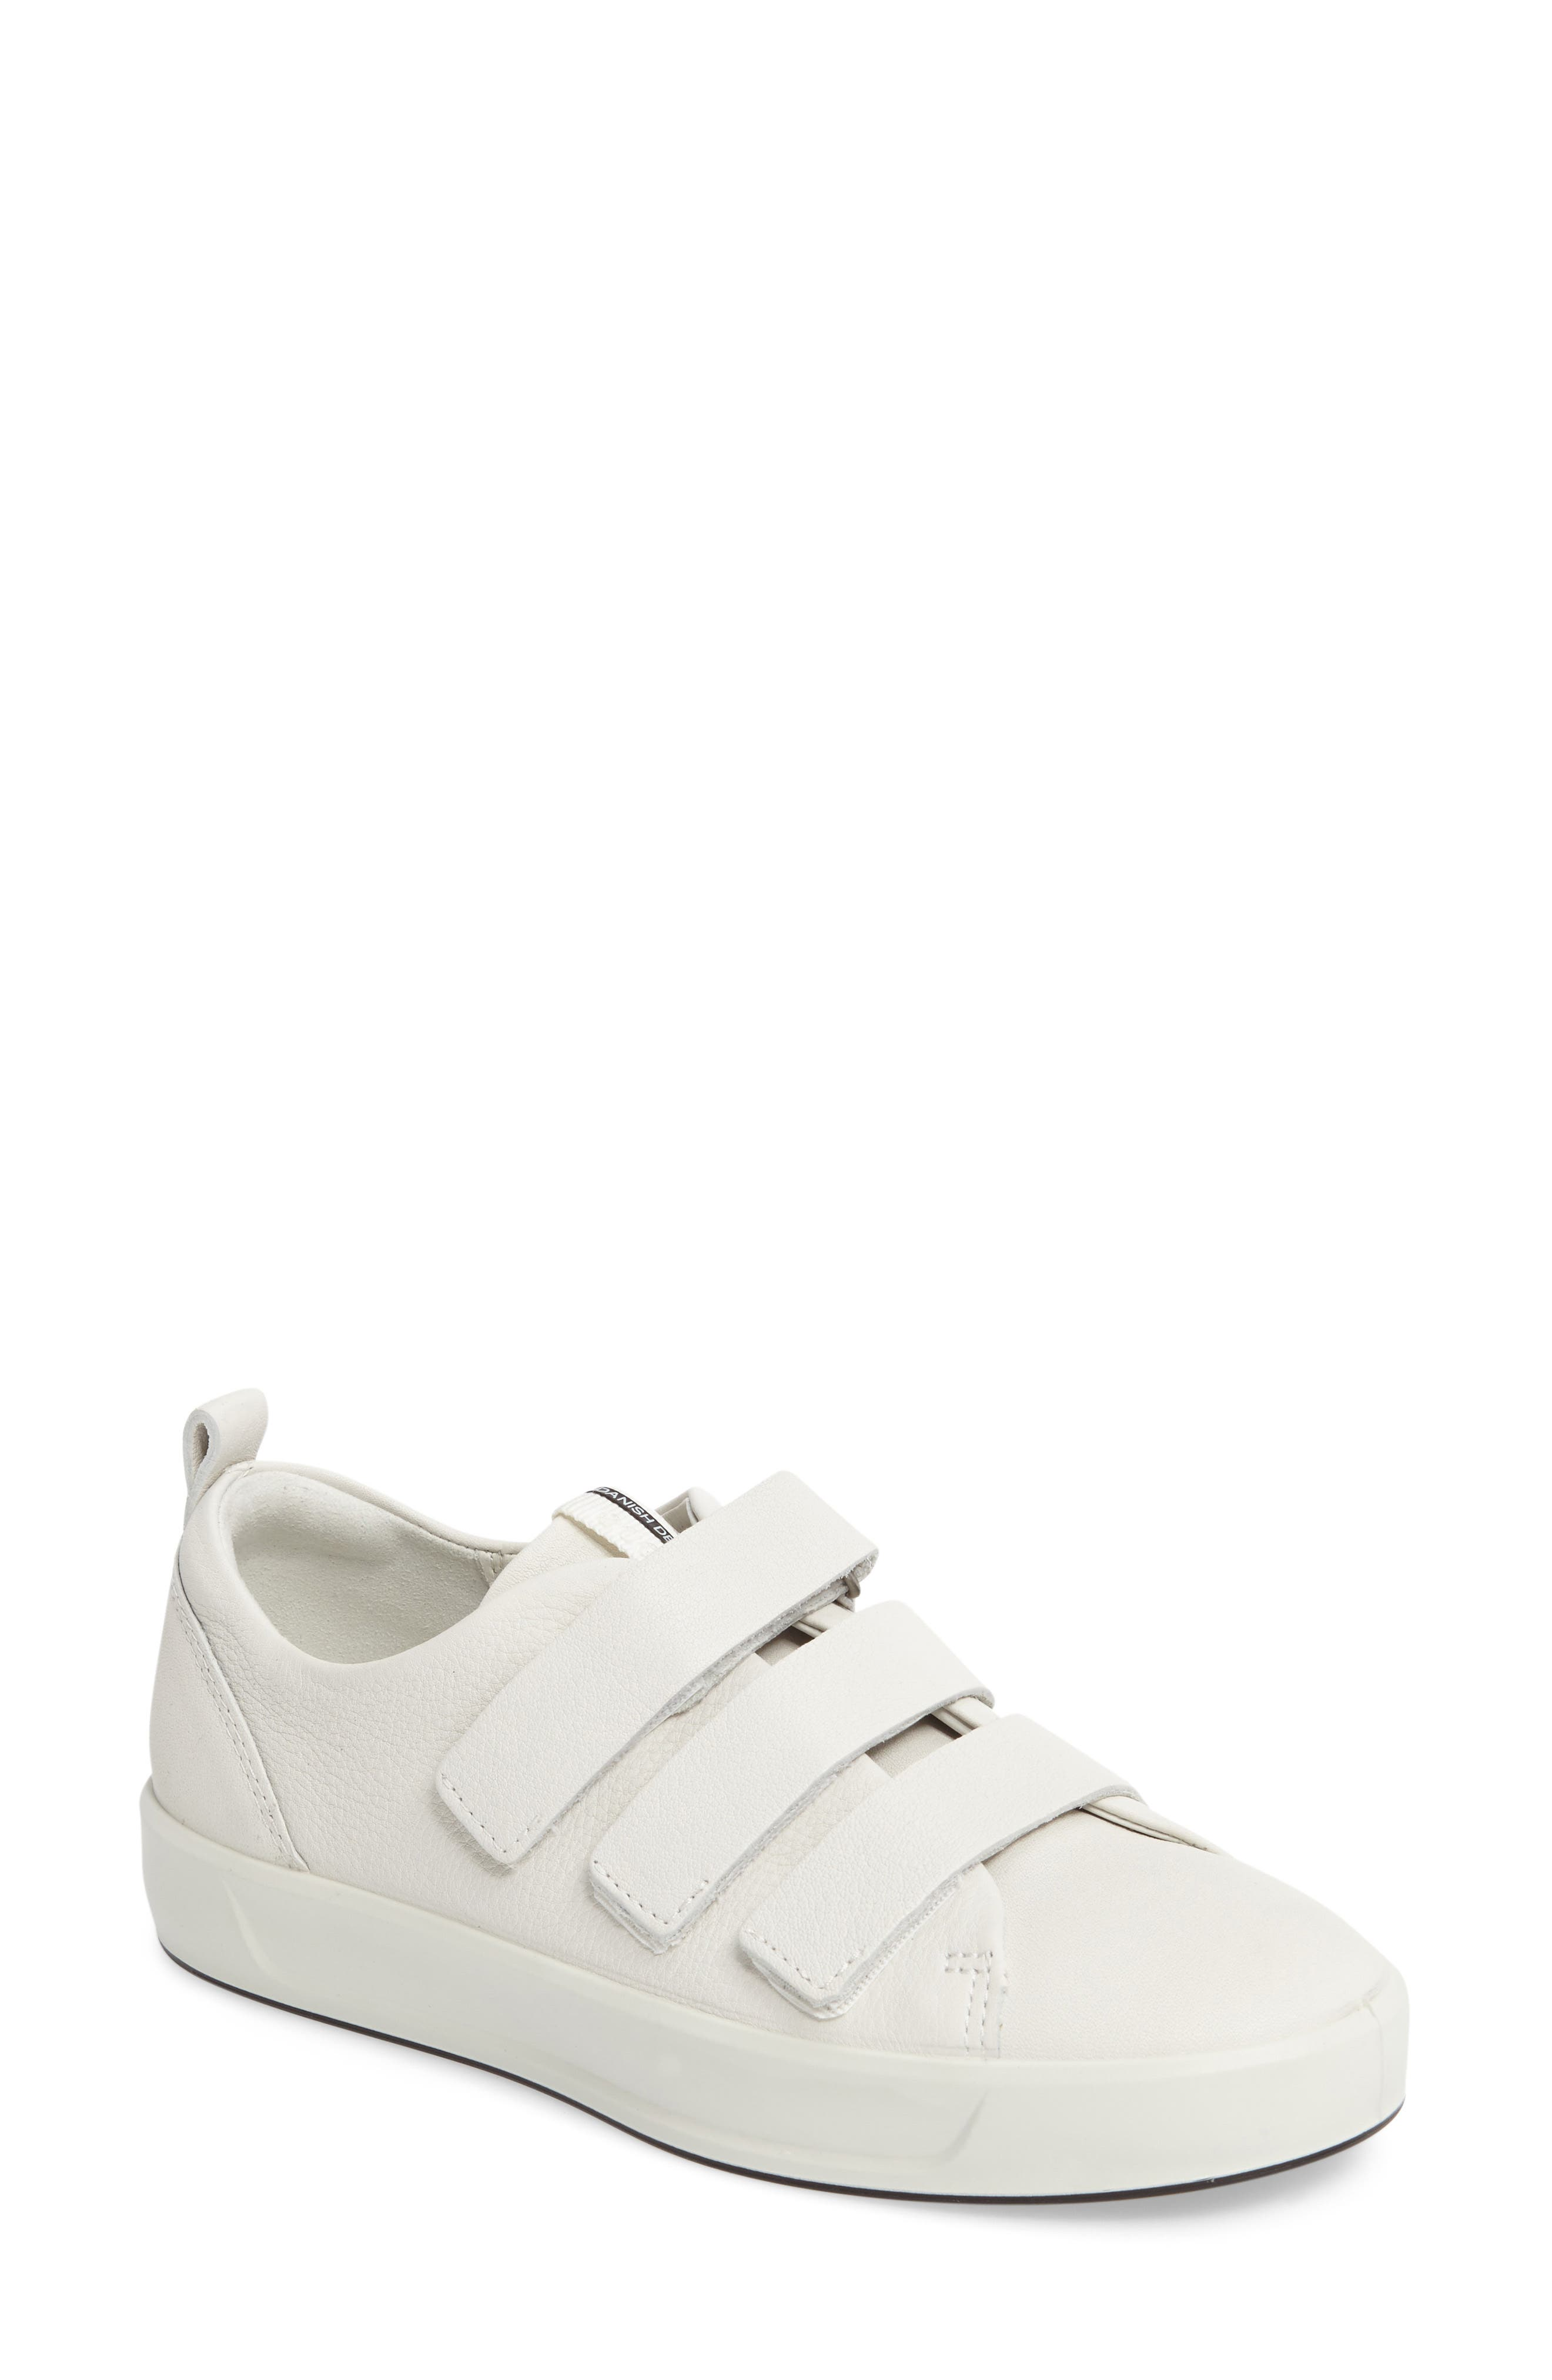 Soft 8 Sneaker,                         Main,                         color, White Leather